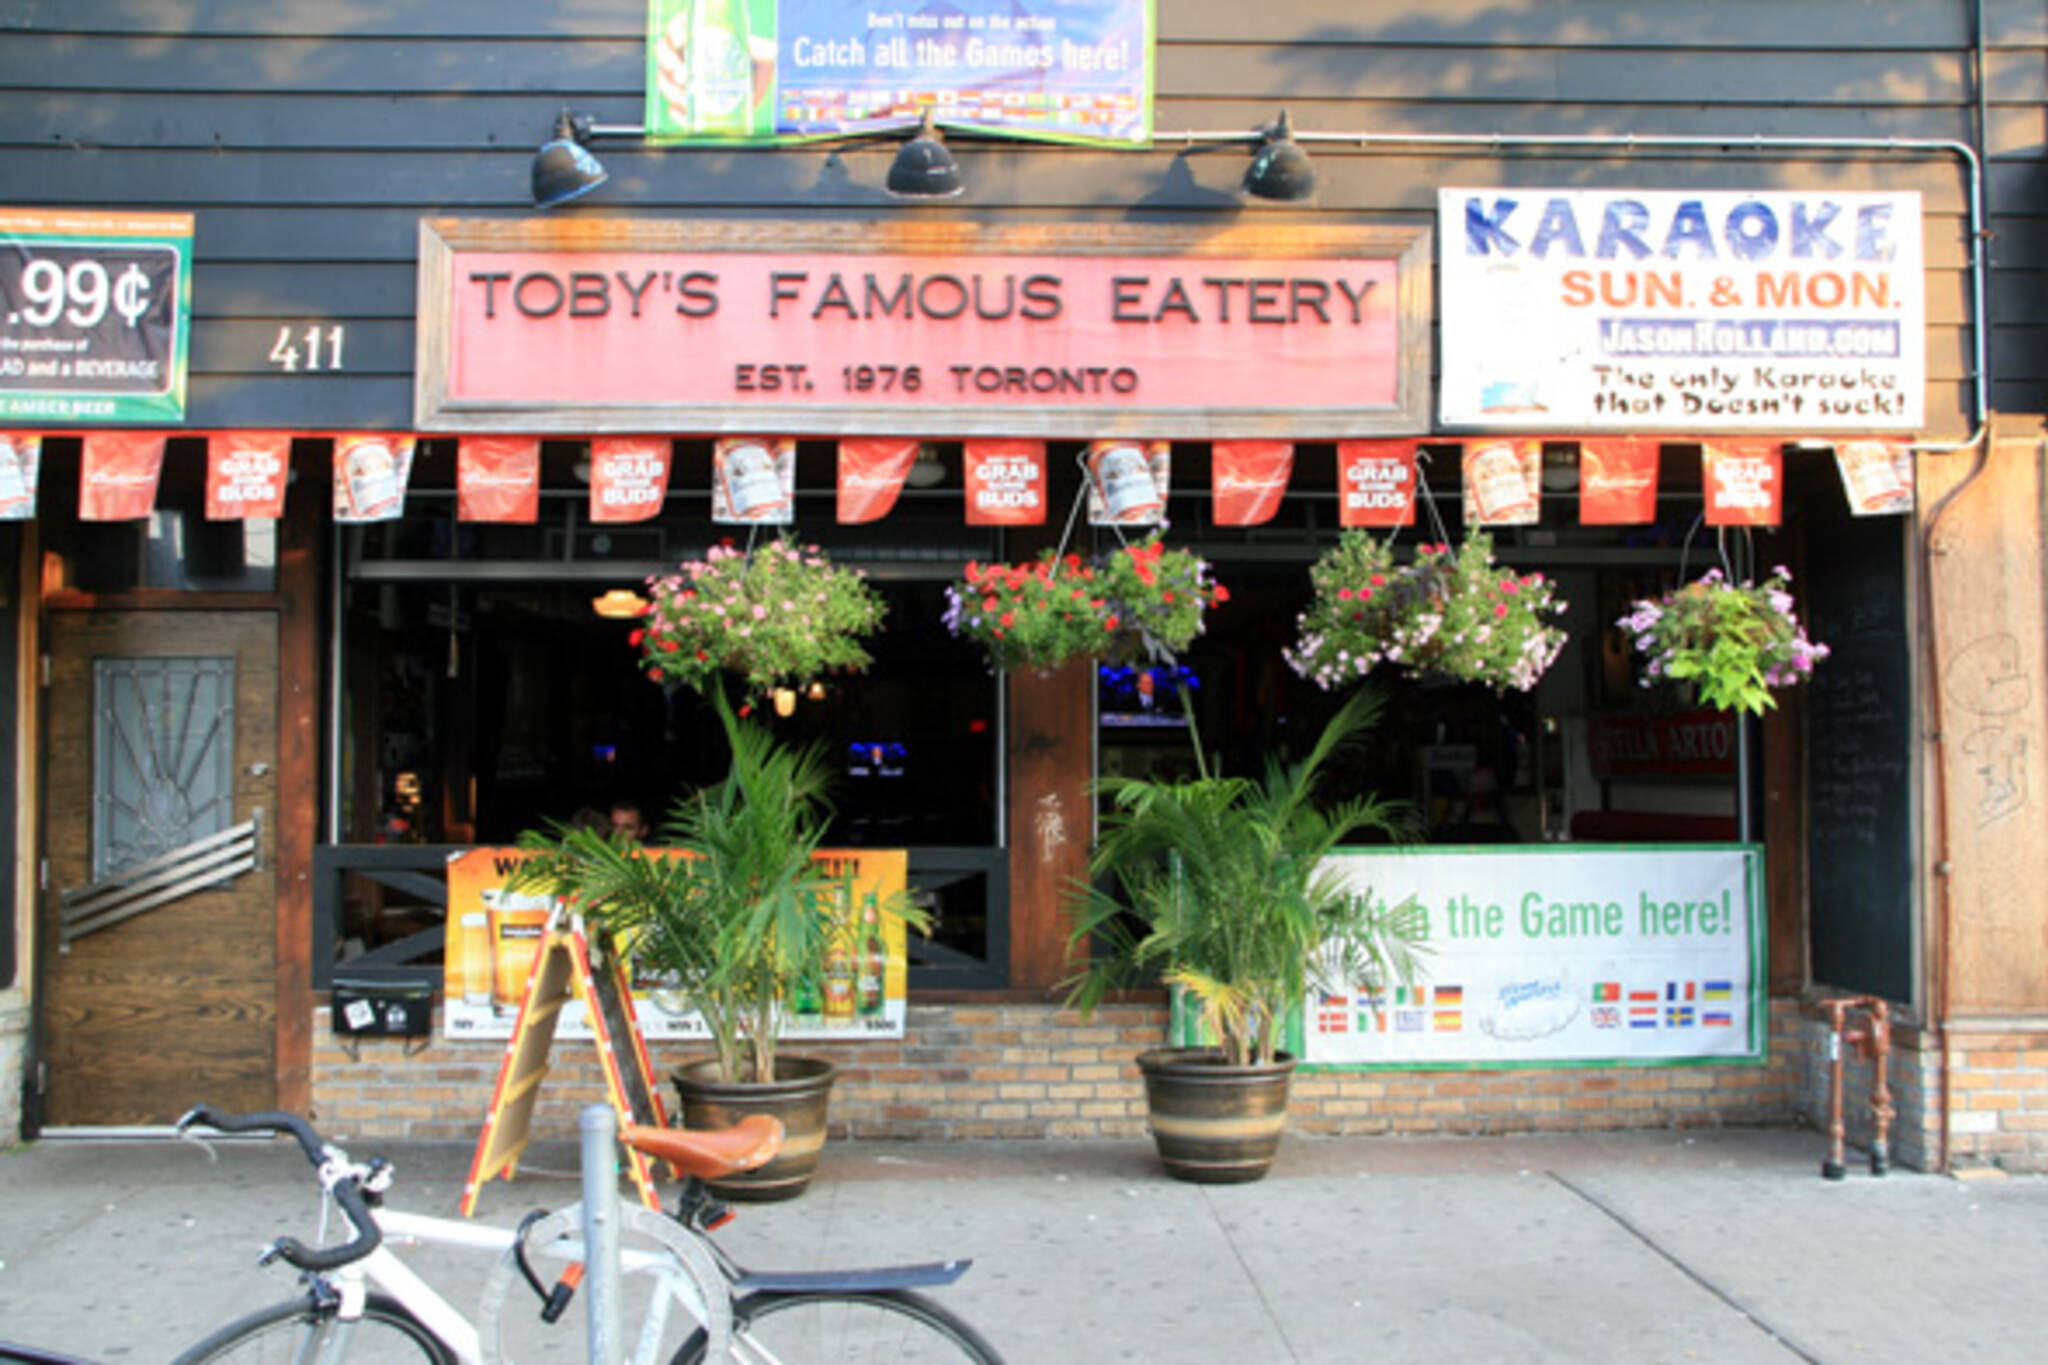 Tobys Famous Eatery